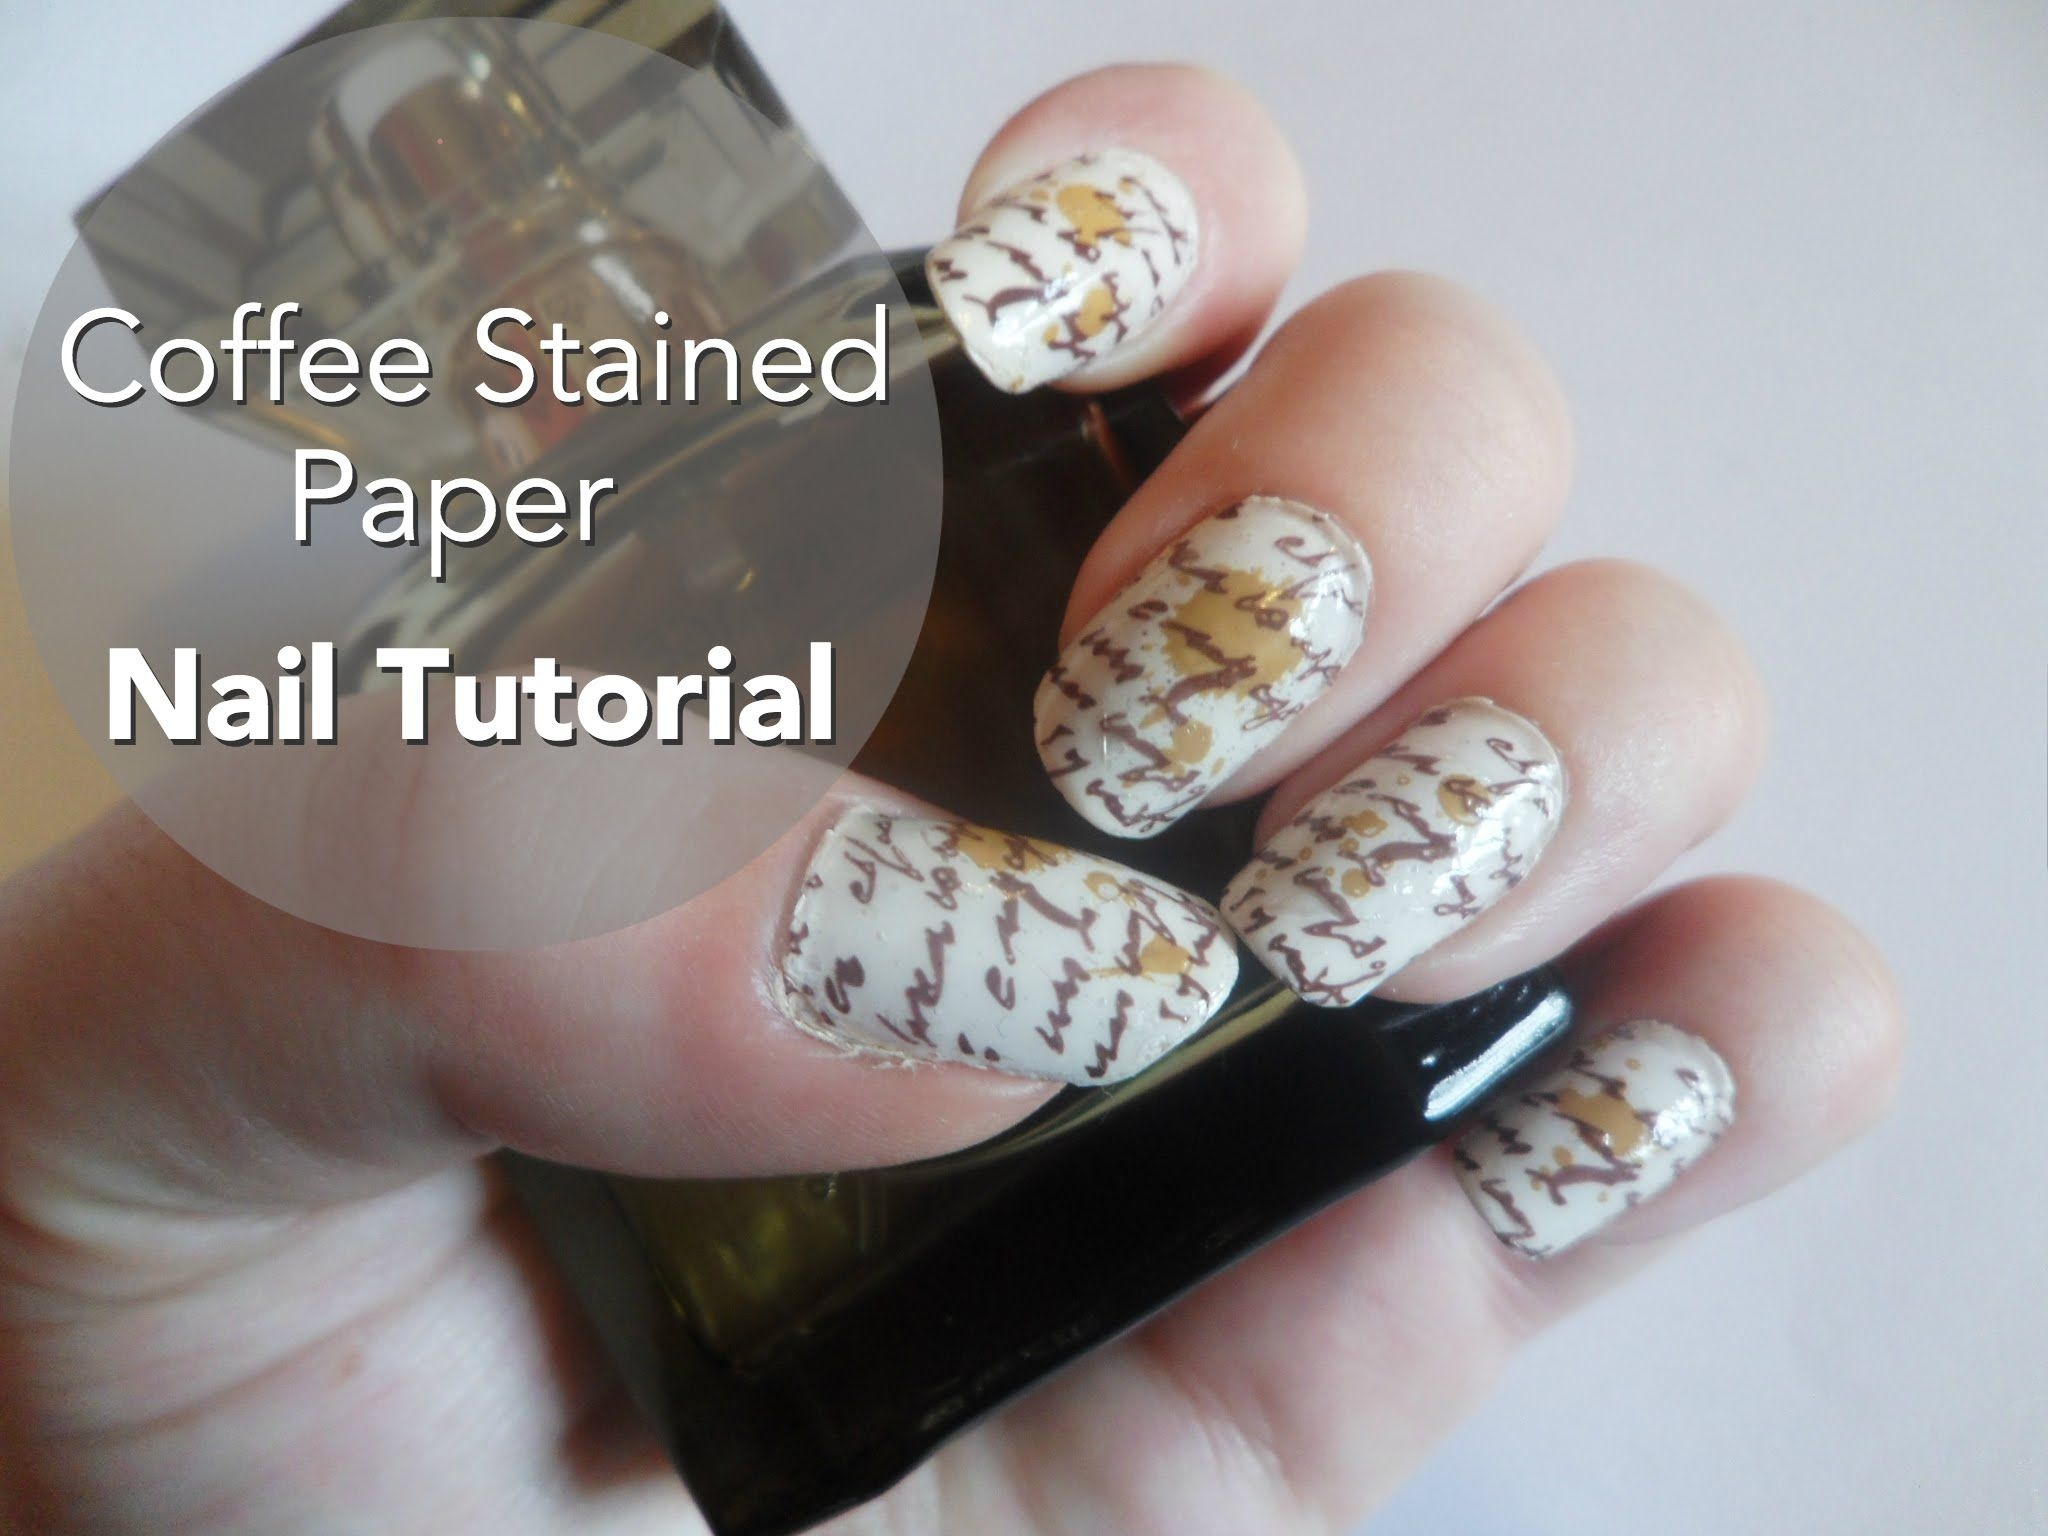 Coffee stained paper nail art tutorial nail art board pinterest